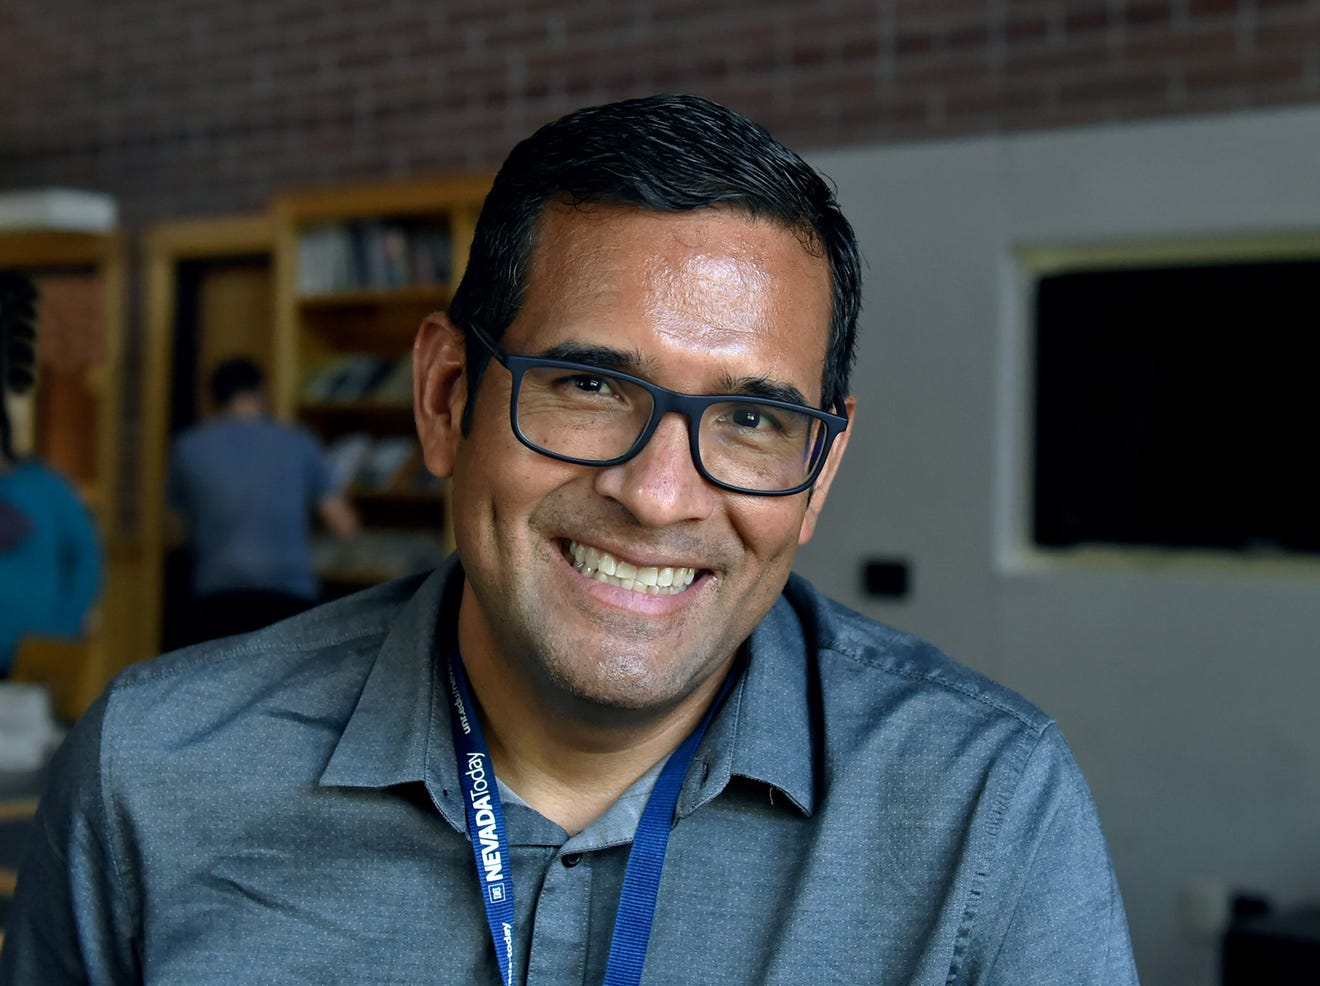 A man with eyeglasses poses in front of the camera